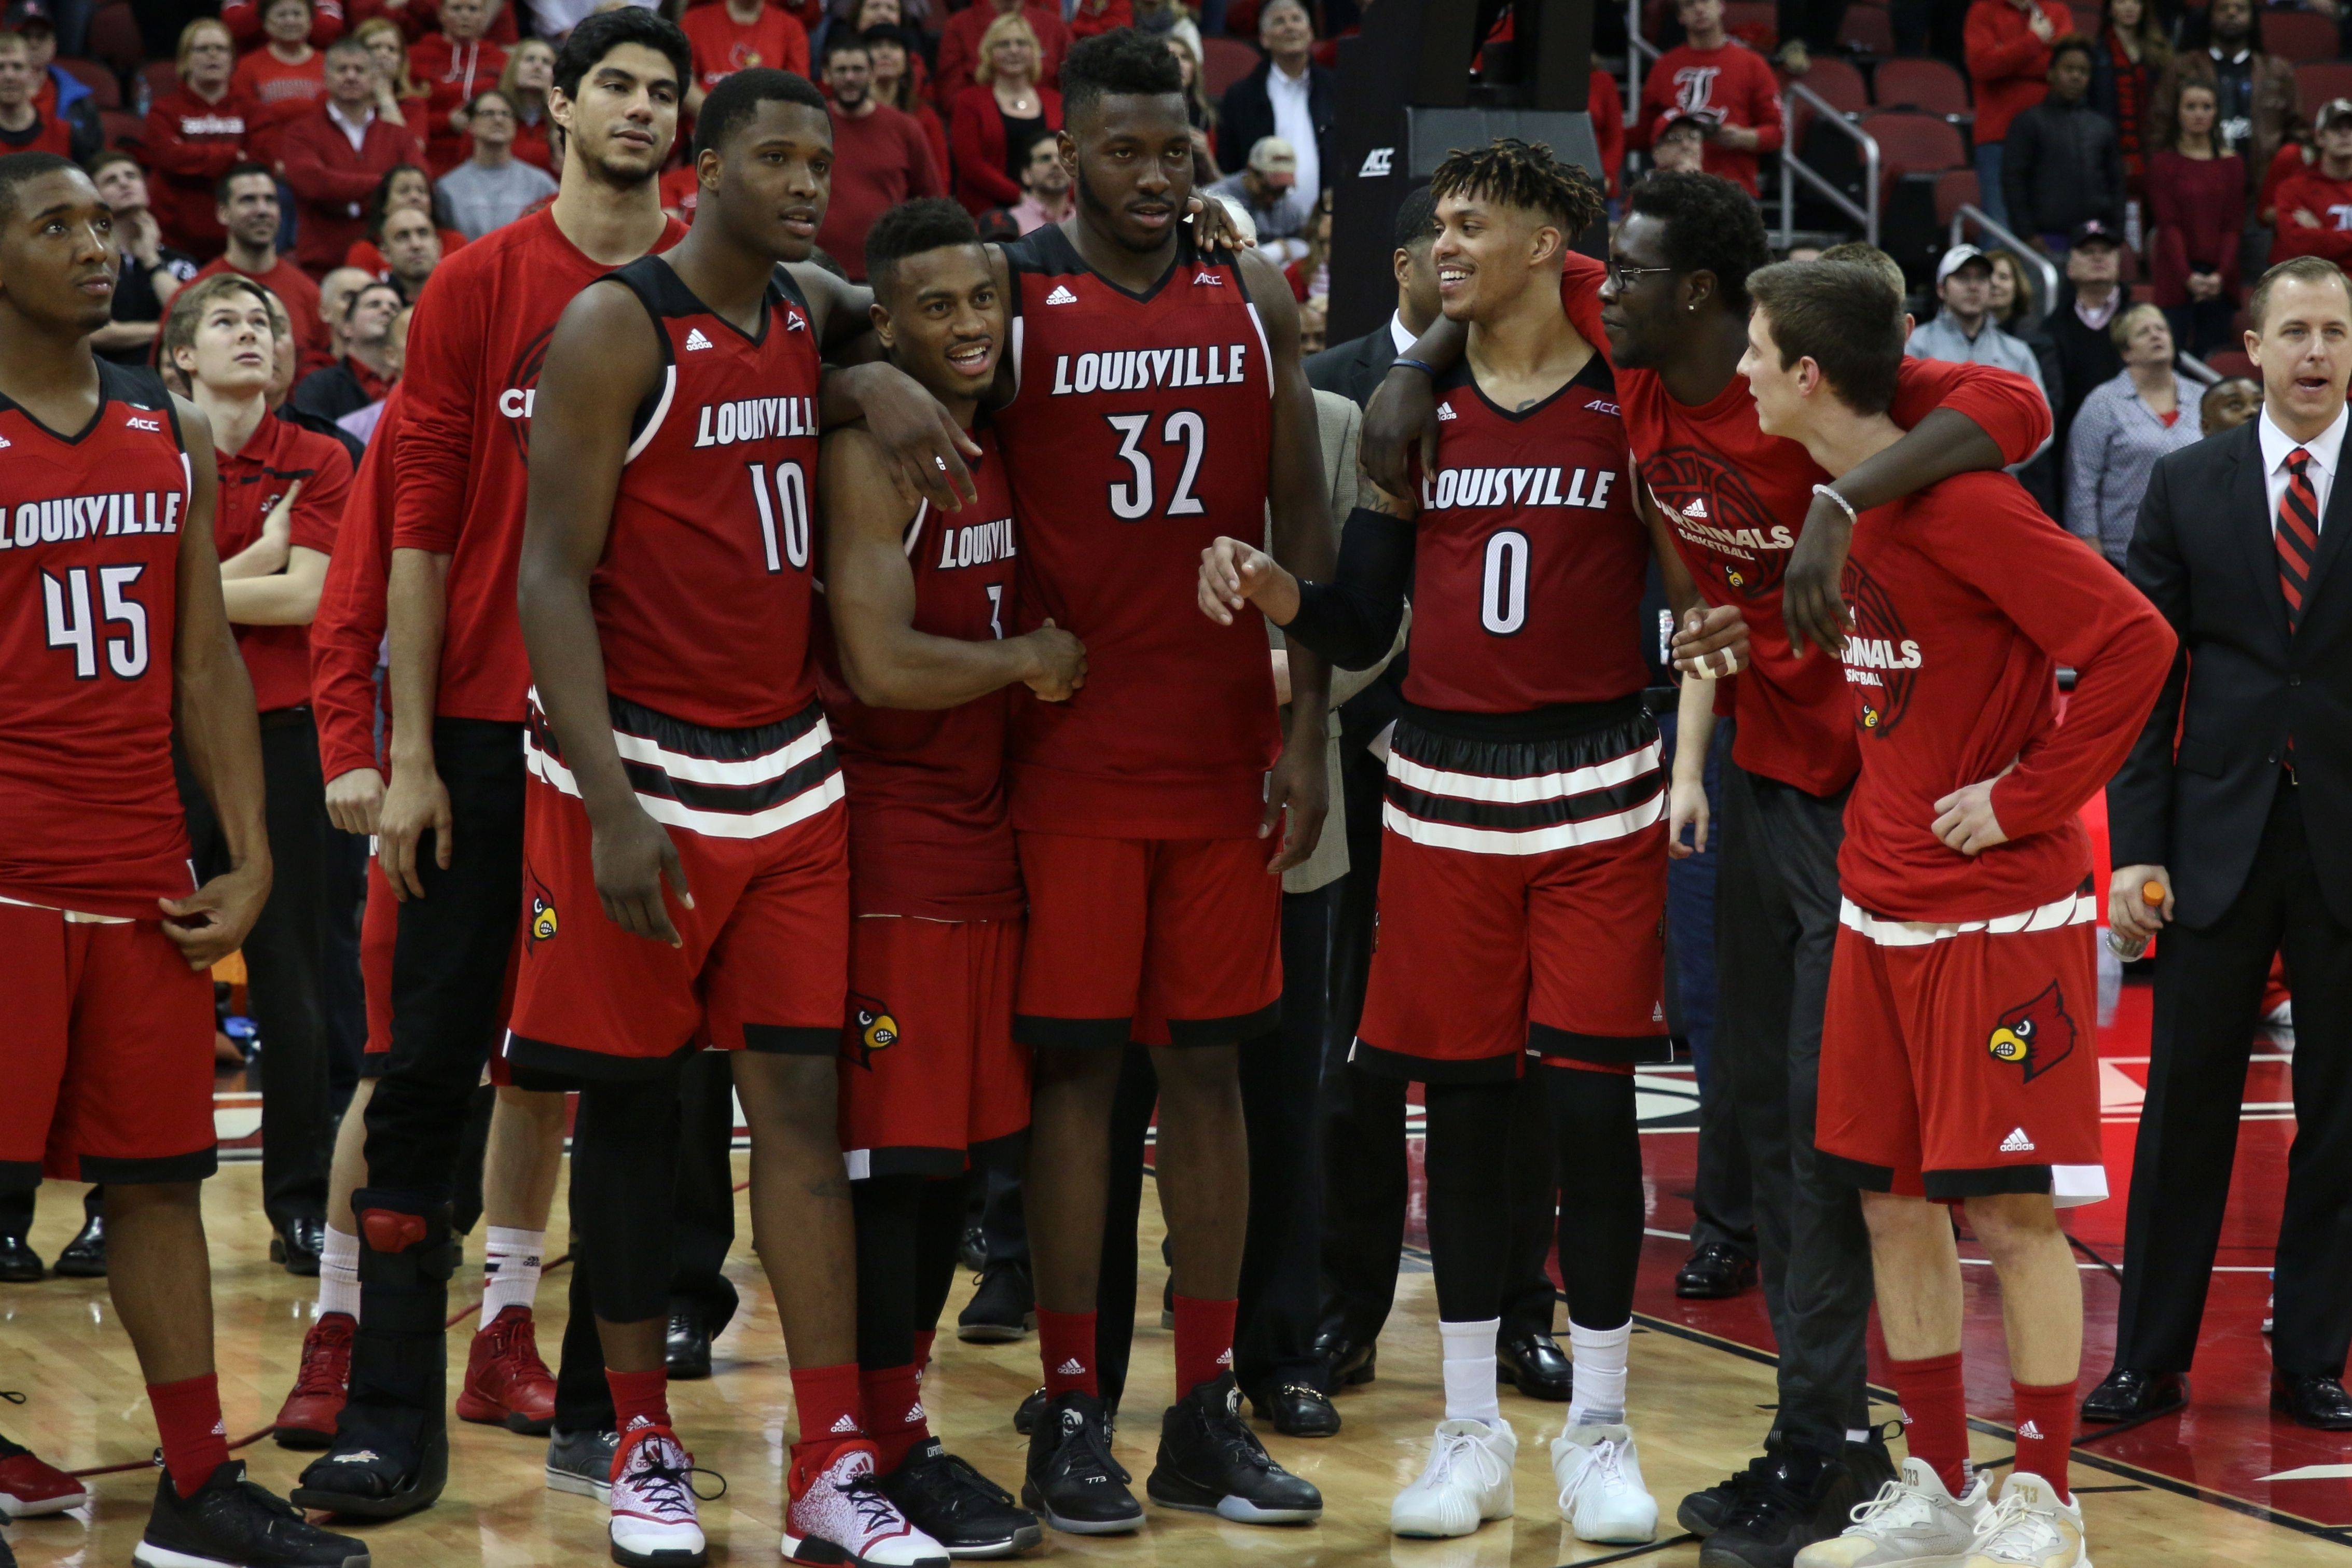 Lincoln Newspaper Speculates Mangok Mathiang to Nebraska? – The